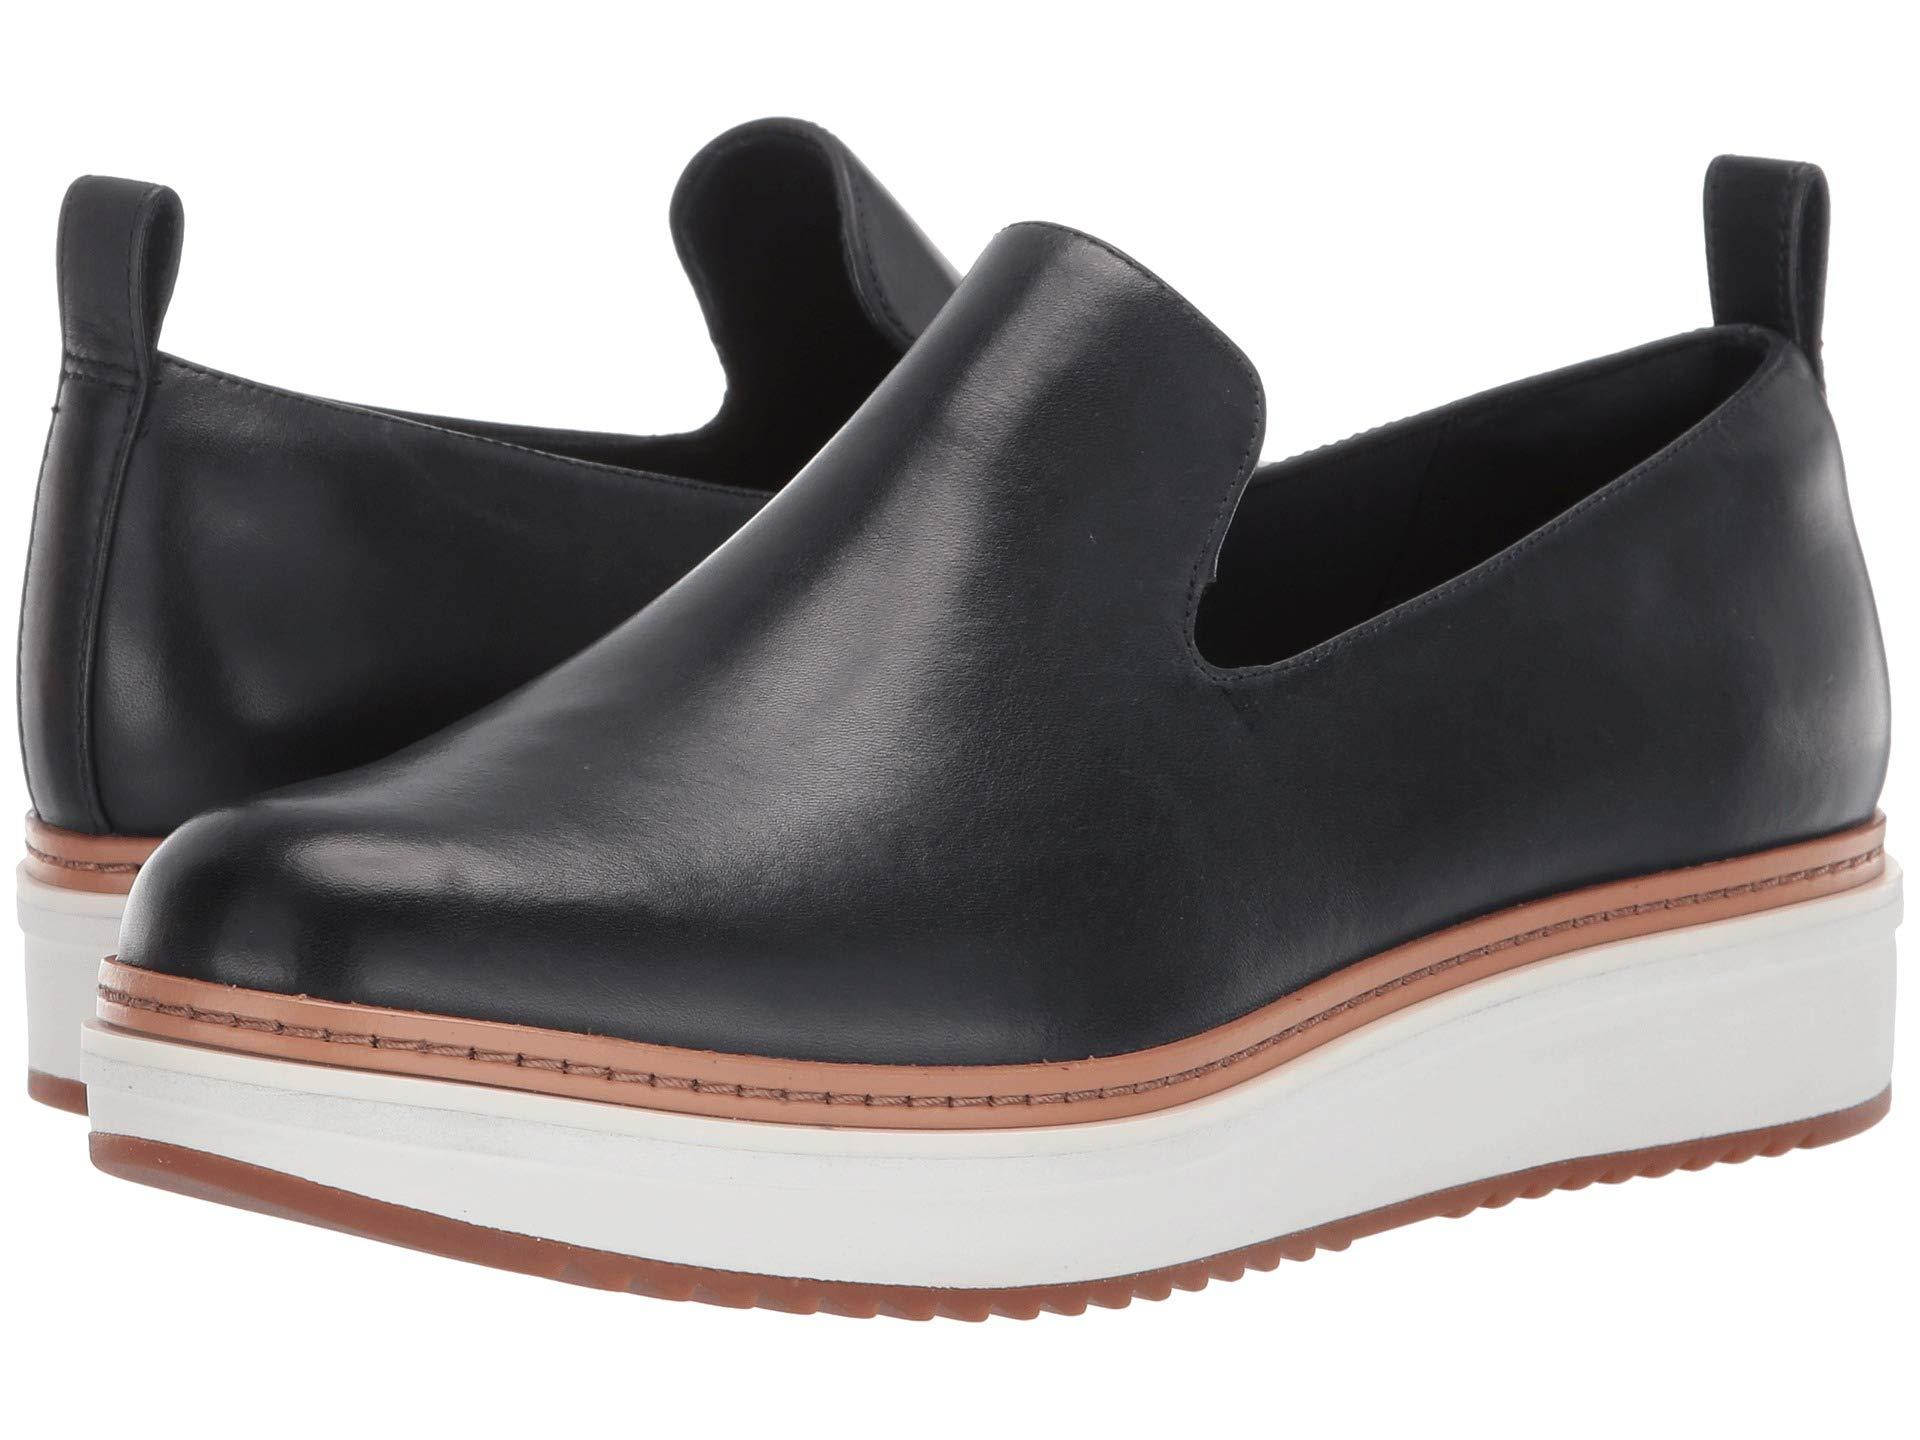 7e1664436ee Lyst - Clarks Teadale Genna (grey Leather) Women s Slip On Shoes